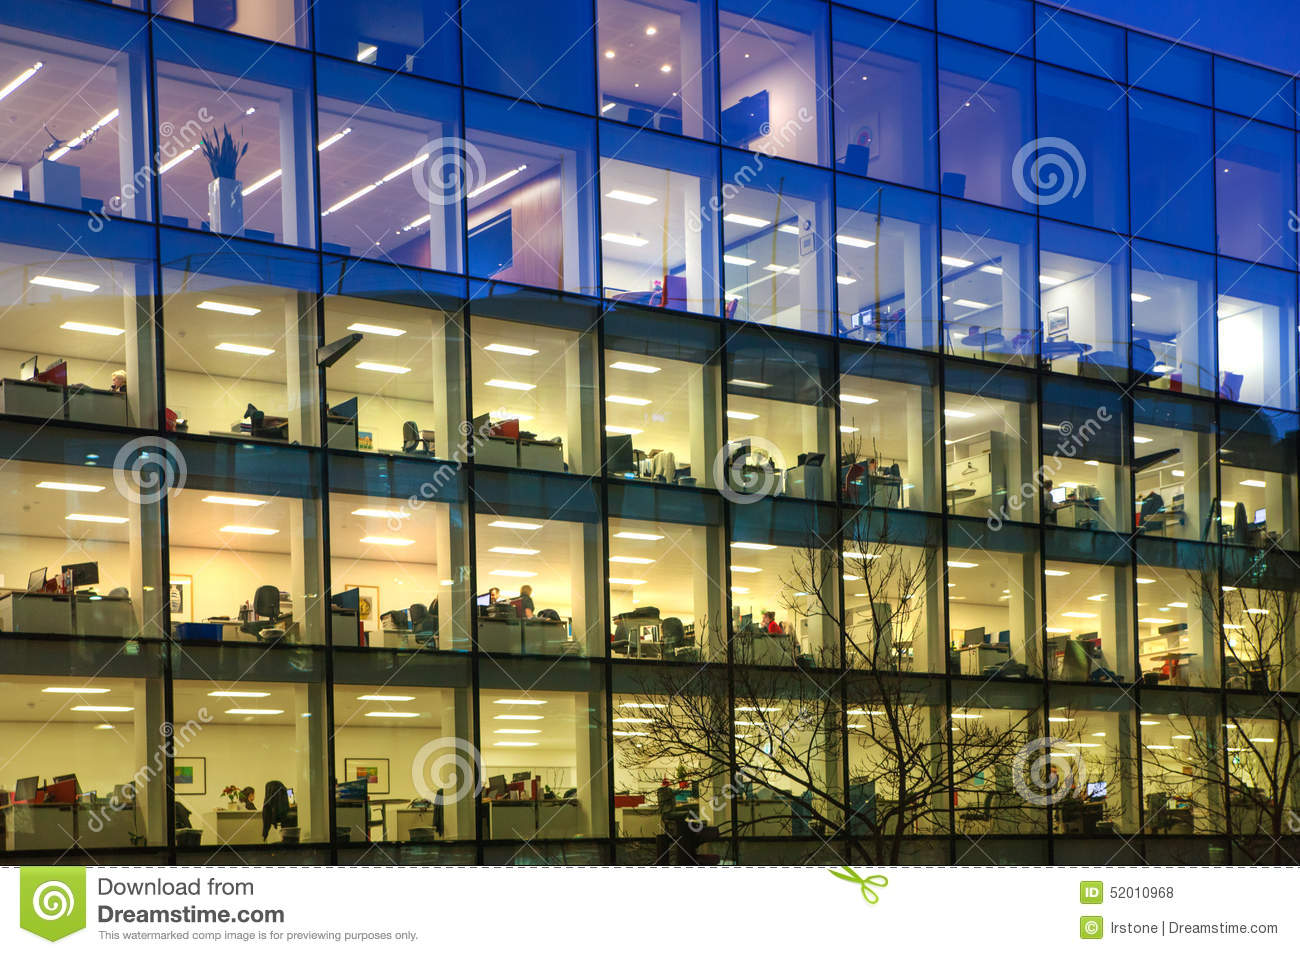 Office block with lots of lit up windows and late office workers inside. City of London business aria in dusk.